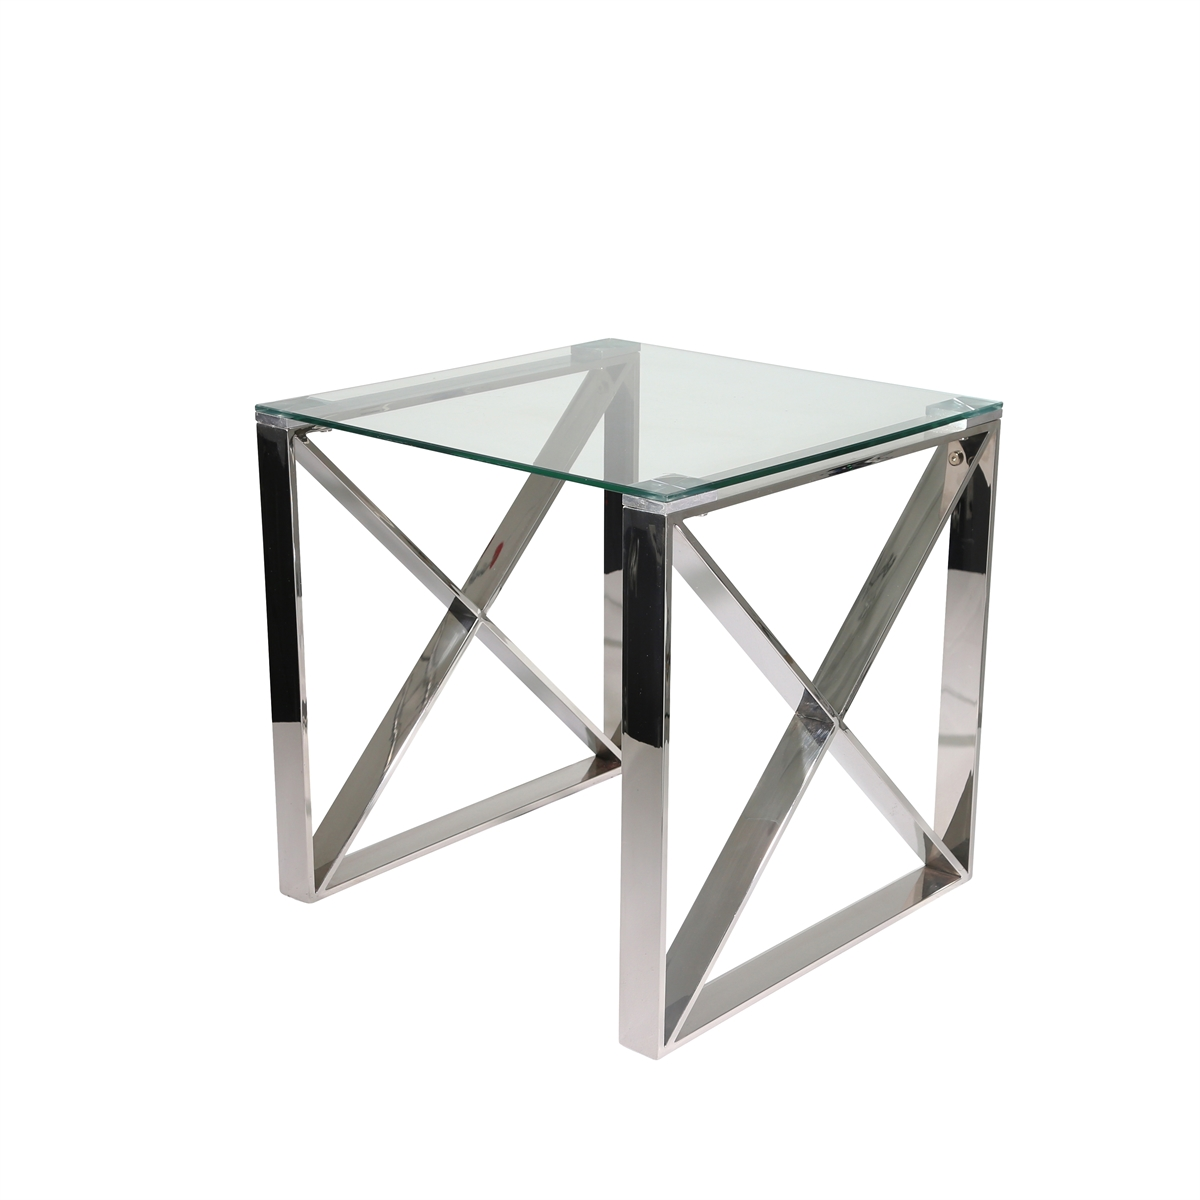 silver metal glass accent table sagebrook home log for pricing and availability material color wine stoppers target laminate threshold bar coffee with drawers ikea patio set